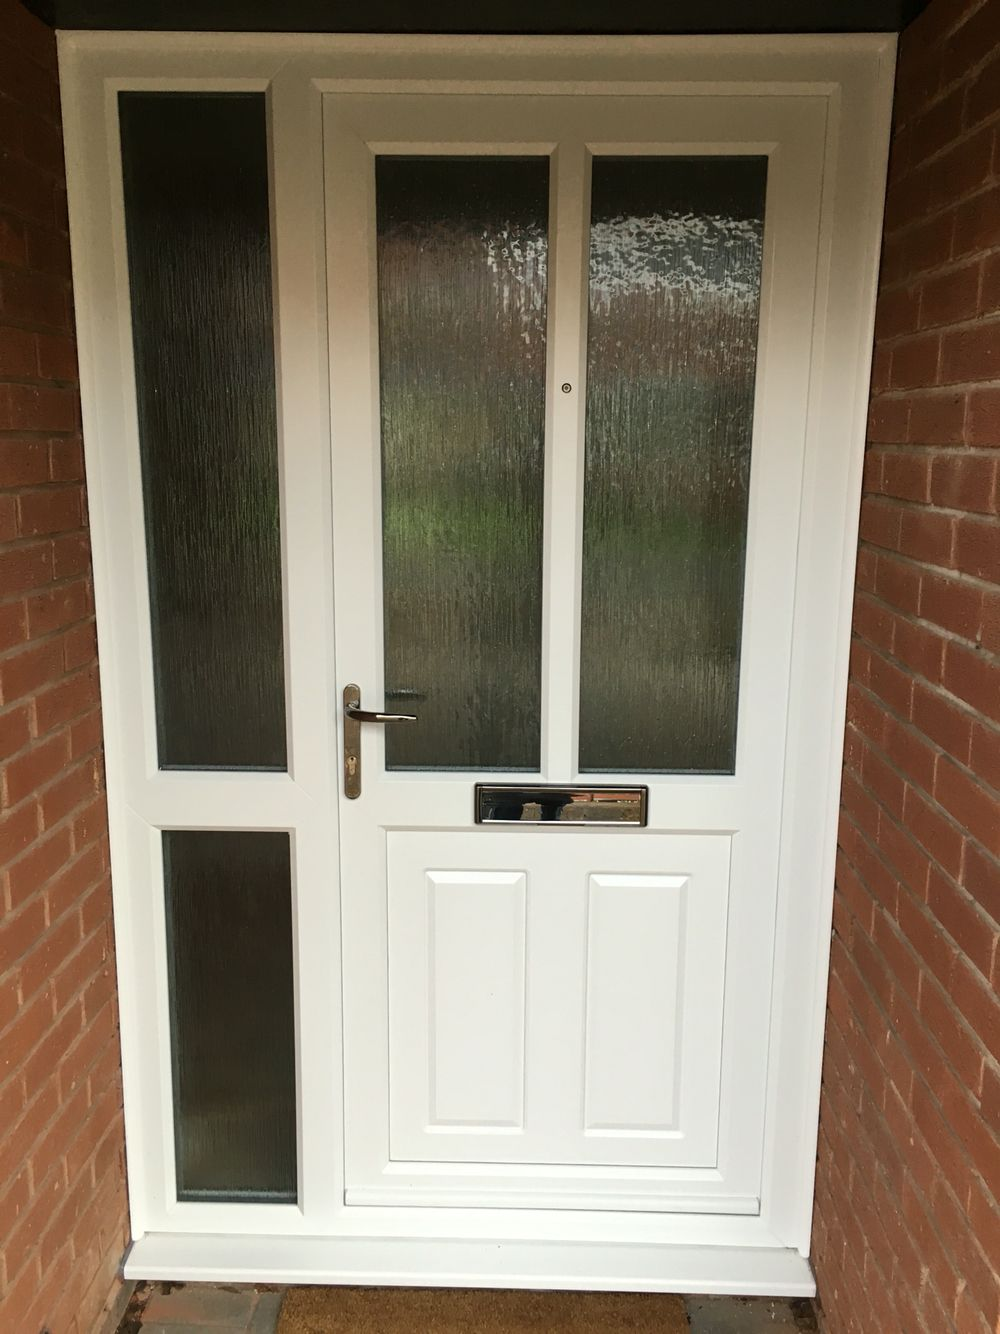 Fenesta upvc doors windows glass flooring - White Upvc Door And Side Panel Mullion And Midrail Giving Strong Security And Ascetics With